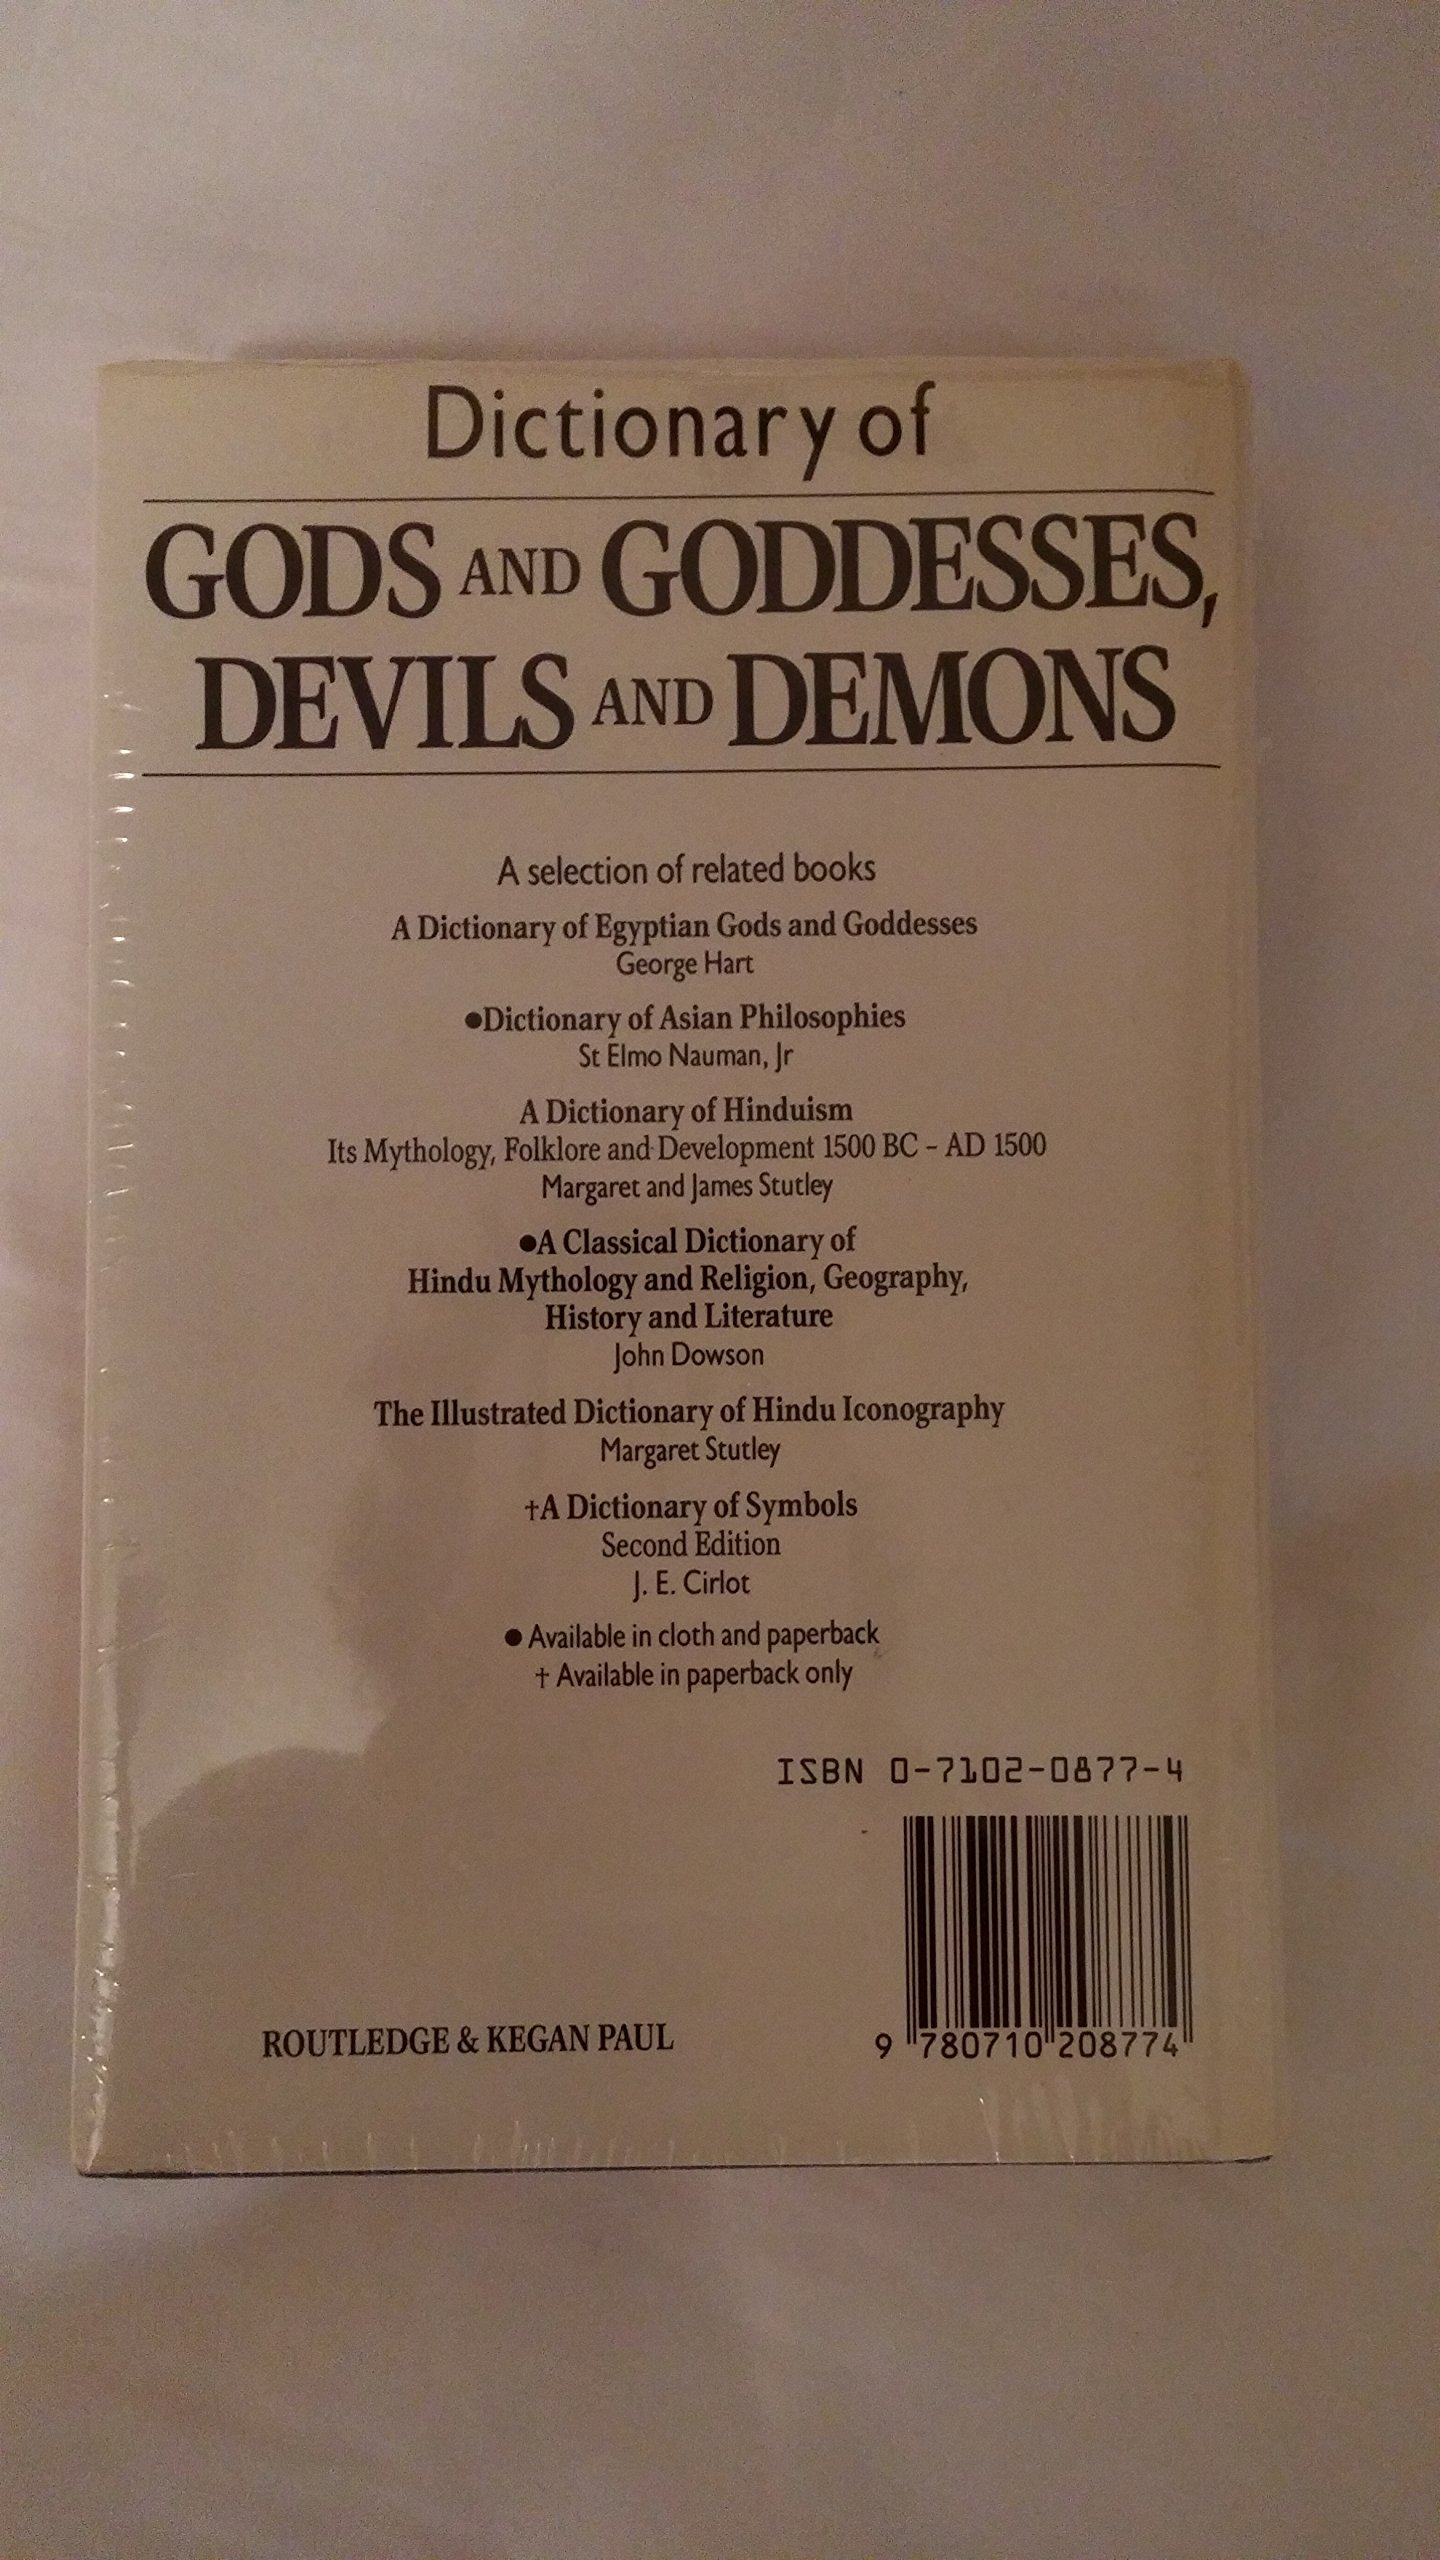 Cirlot dictionary of symbols gallery symbol and sign ideas dictionary of gods and goddesses devils and demons amazon dictionary of gods and goddesses devils and buycottarizona